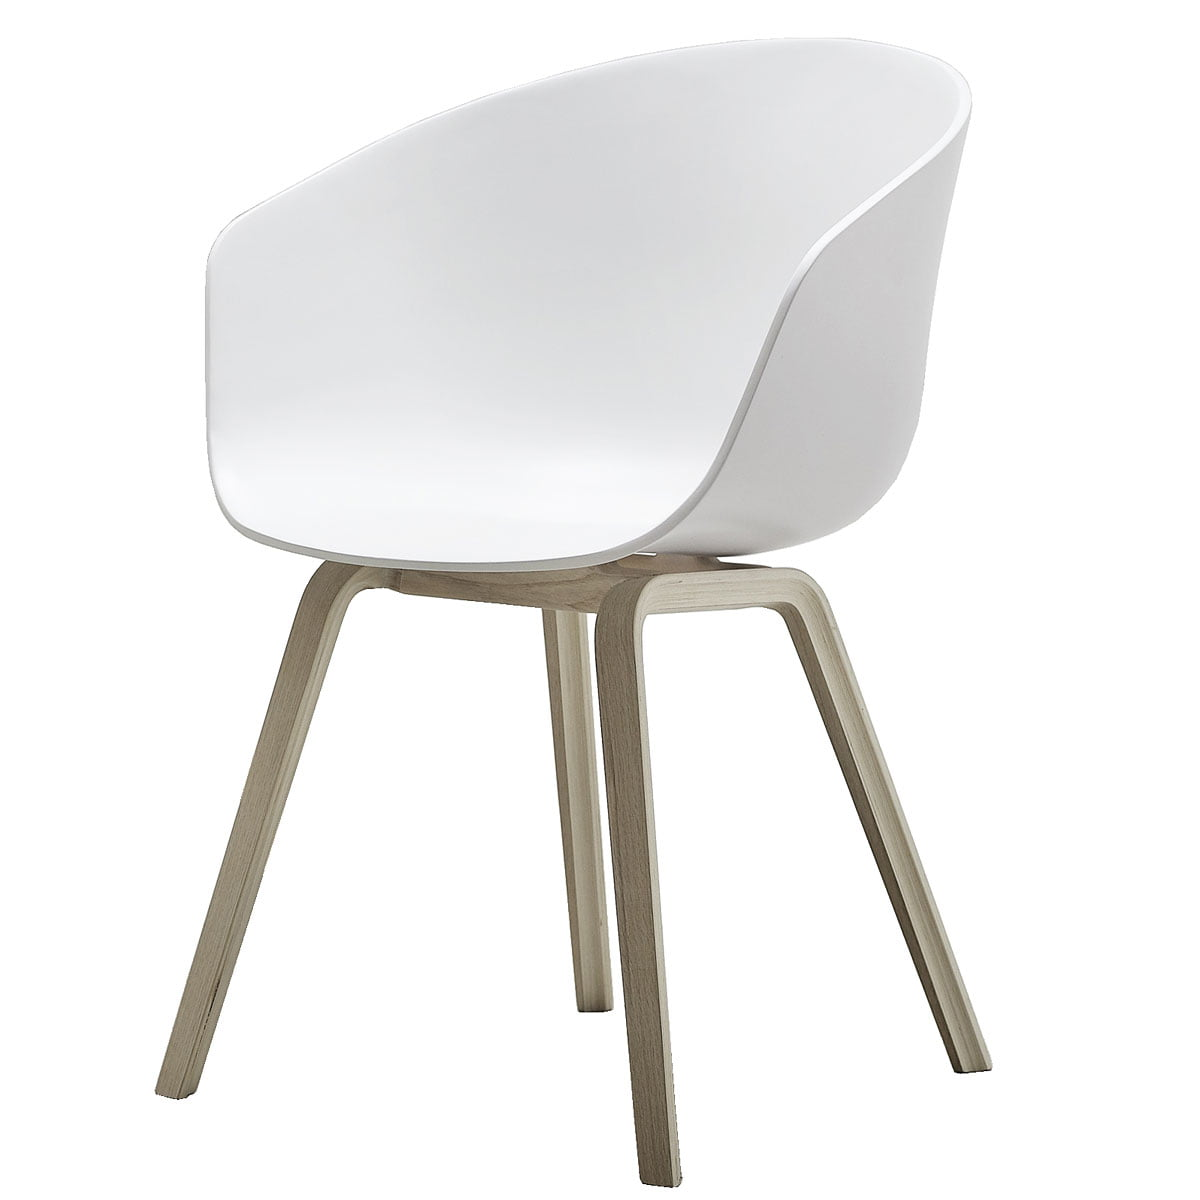 office chair conference dining scandinavian design aac22. Hay - About A Chair Office Conference Dining Scandinavian Design Aac22